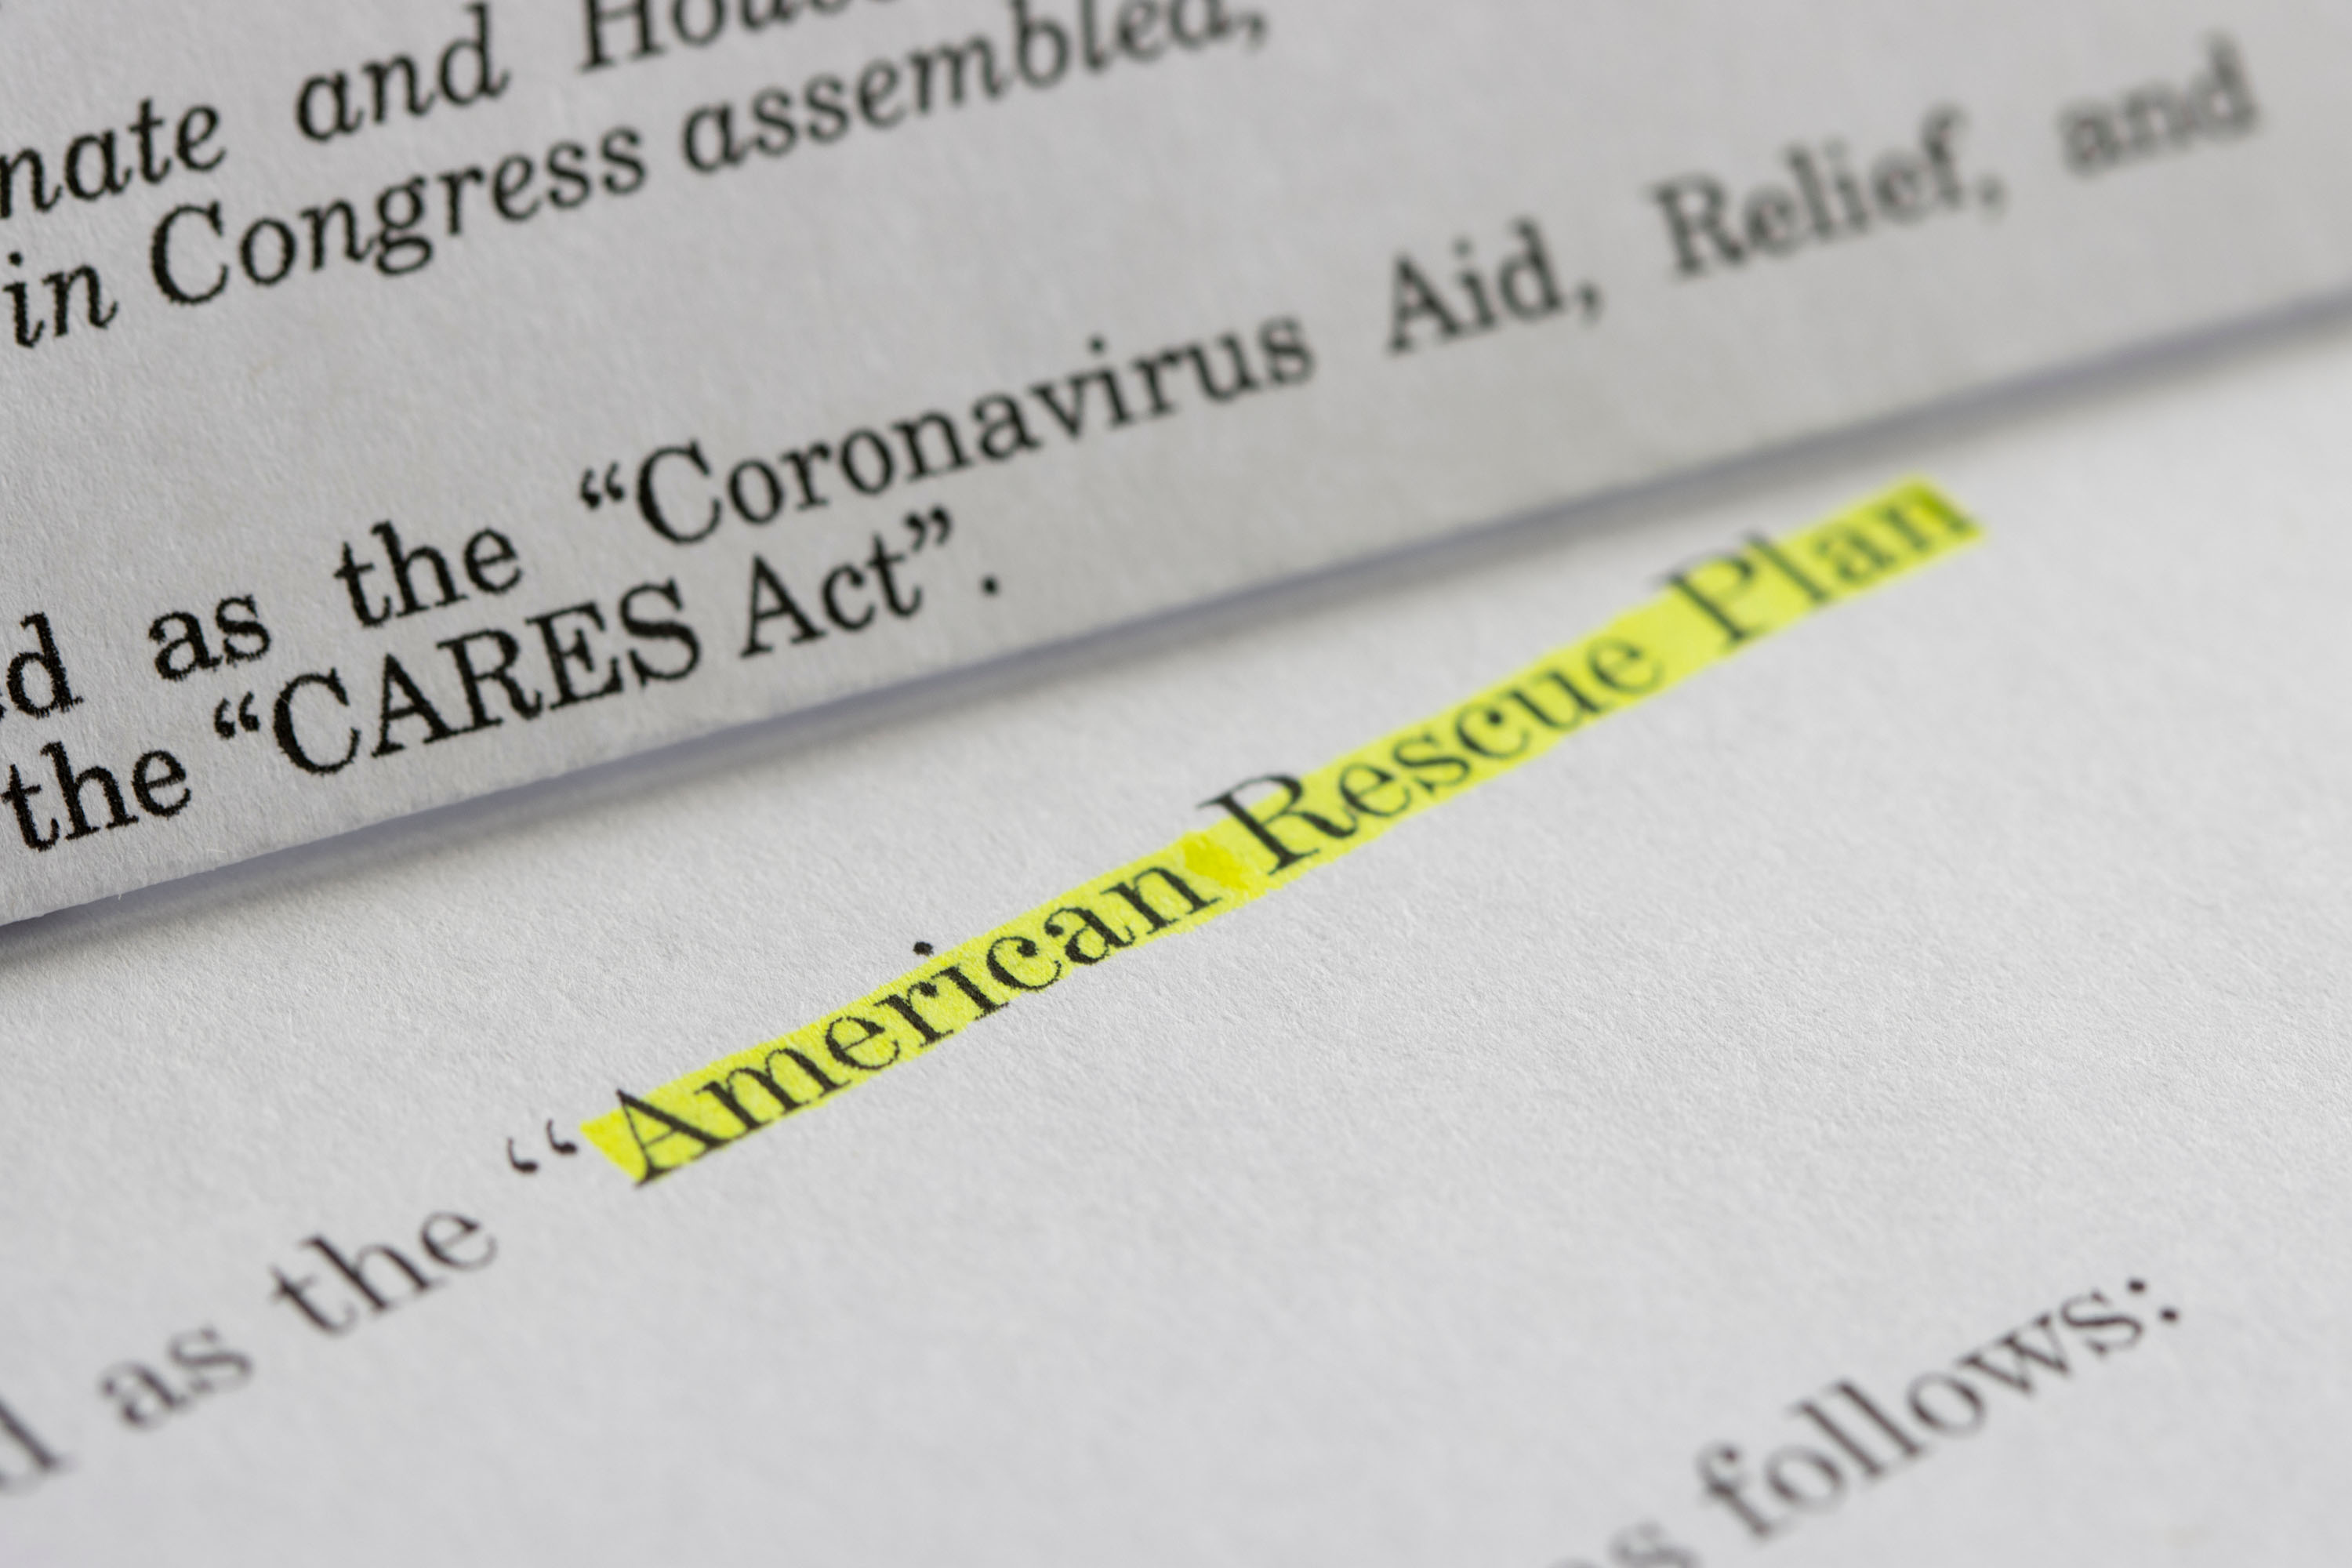 The American Rescue Plan Act provides sweeping relief measures for eligible families and businesses